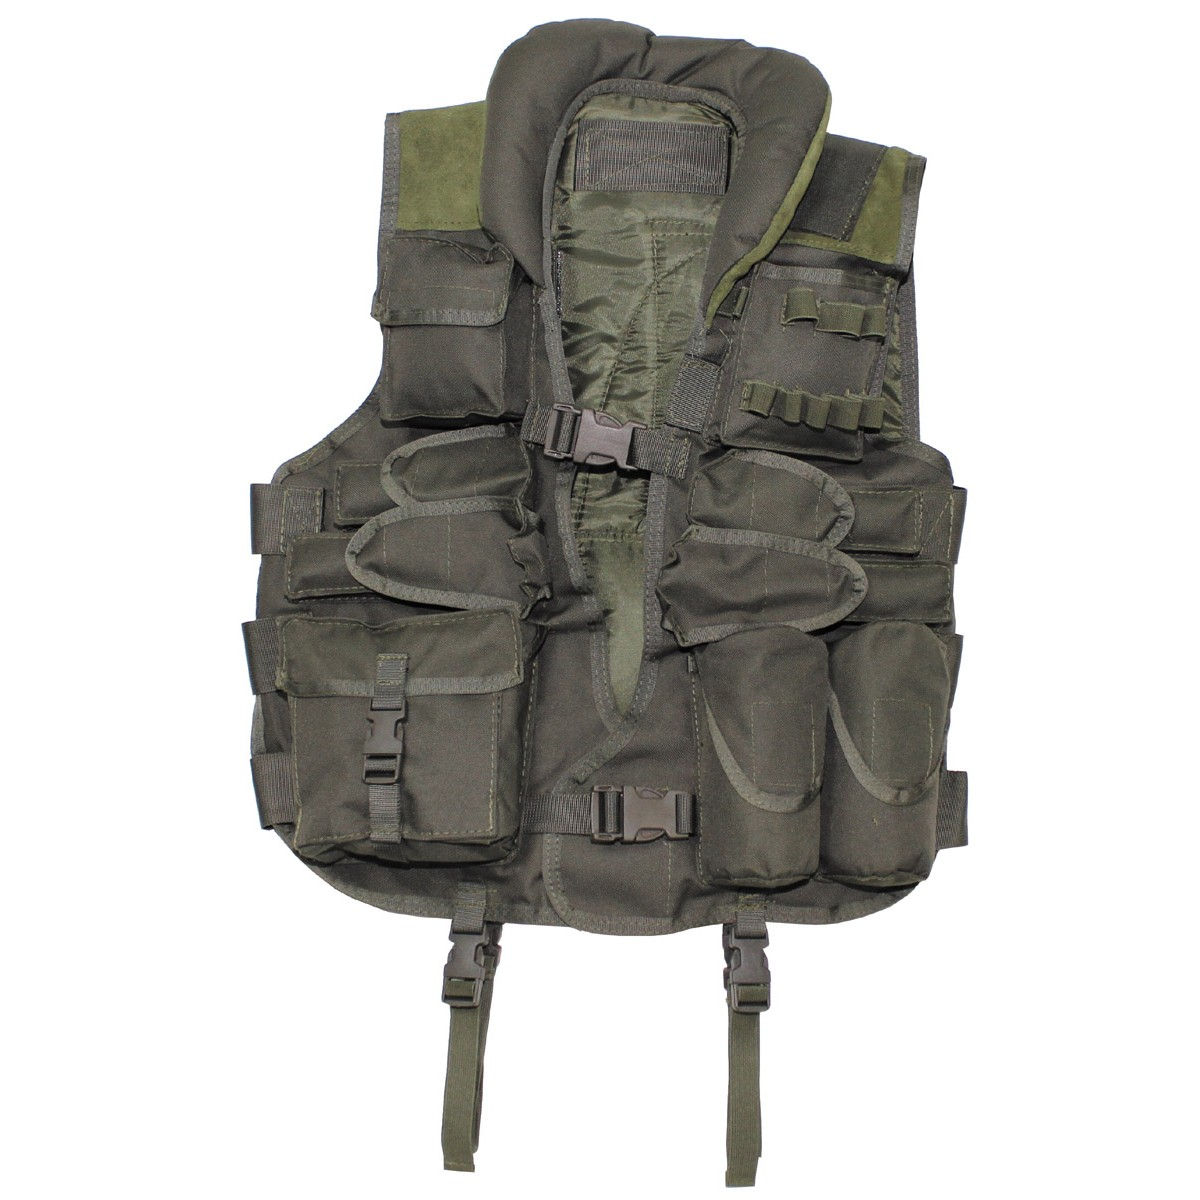 Tactical Army Vest with Leather - OD Green